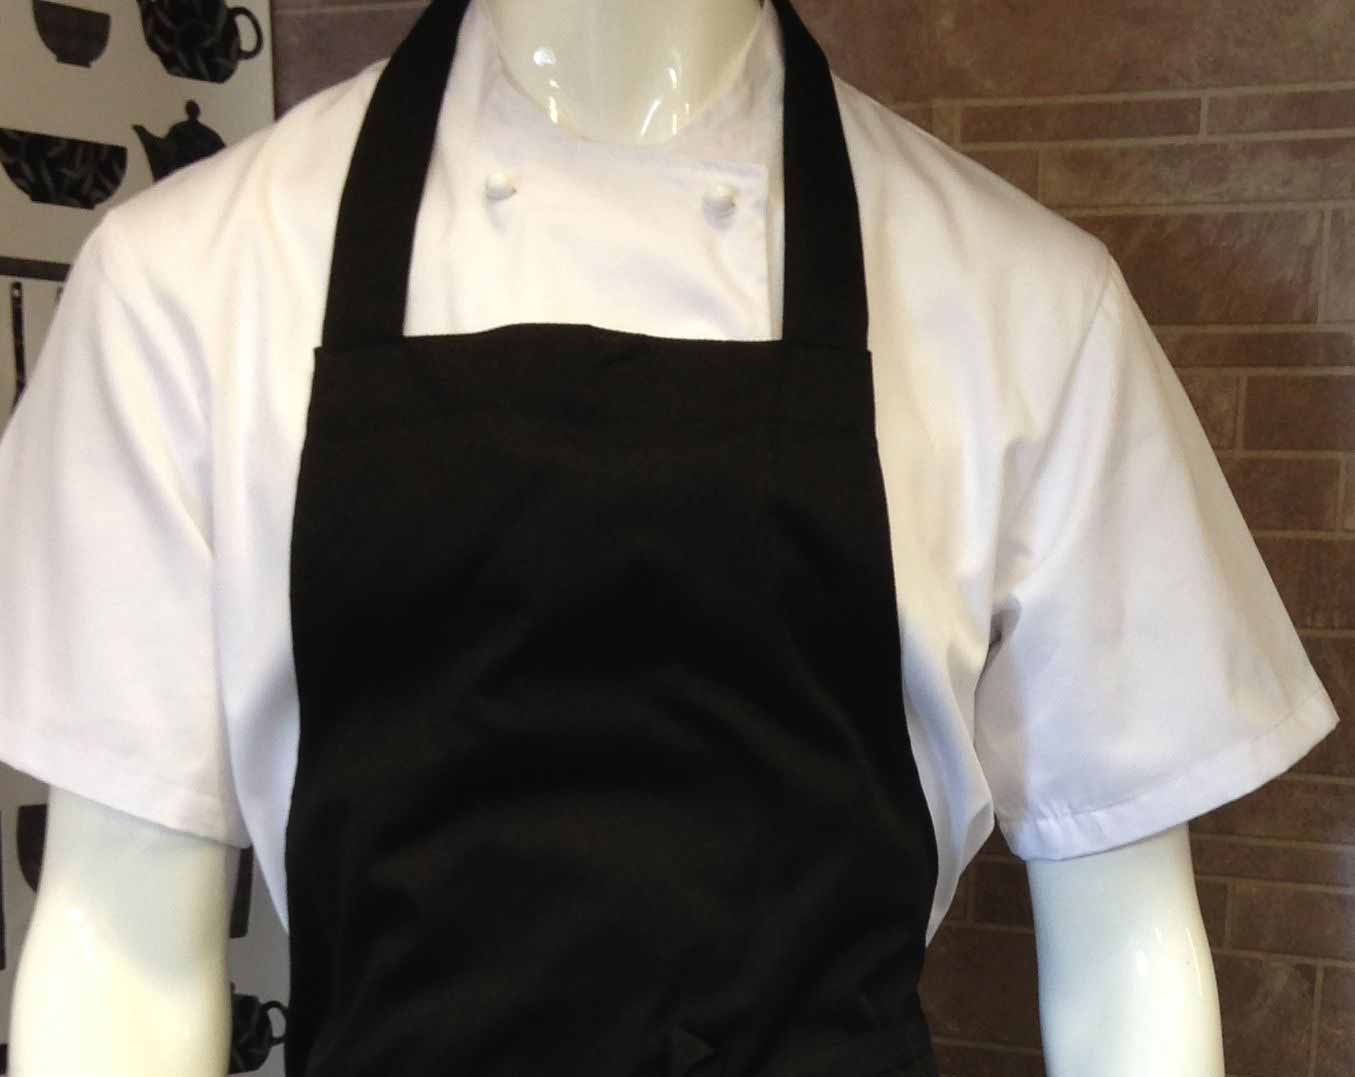 An image of a mannequin wearing a white double breasted chef jacket with French knot buttons, underneath a black apron.